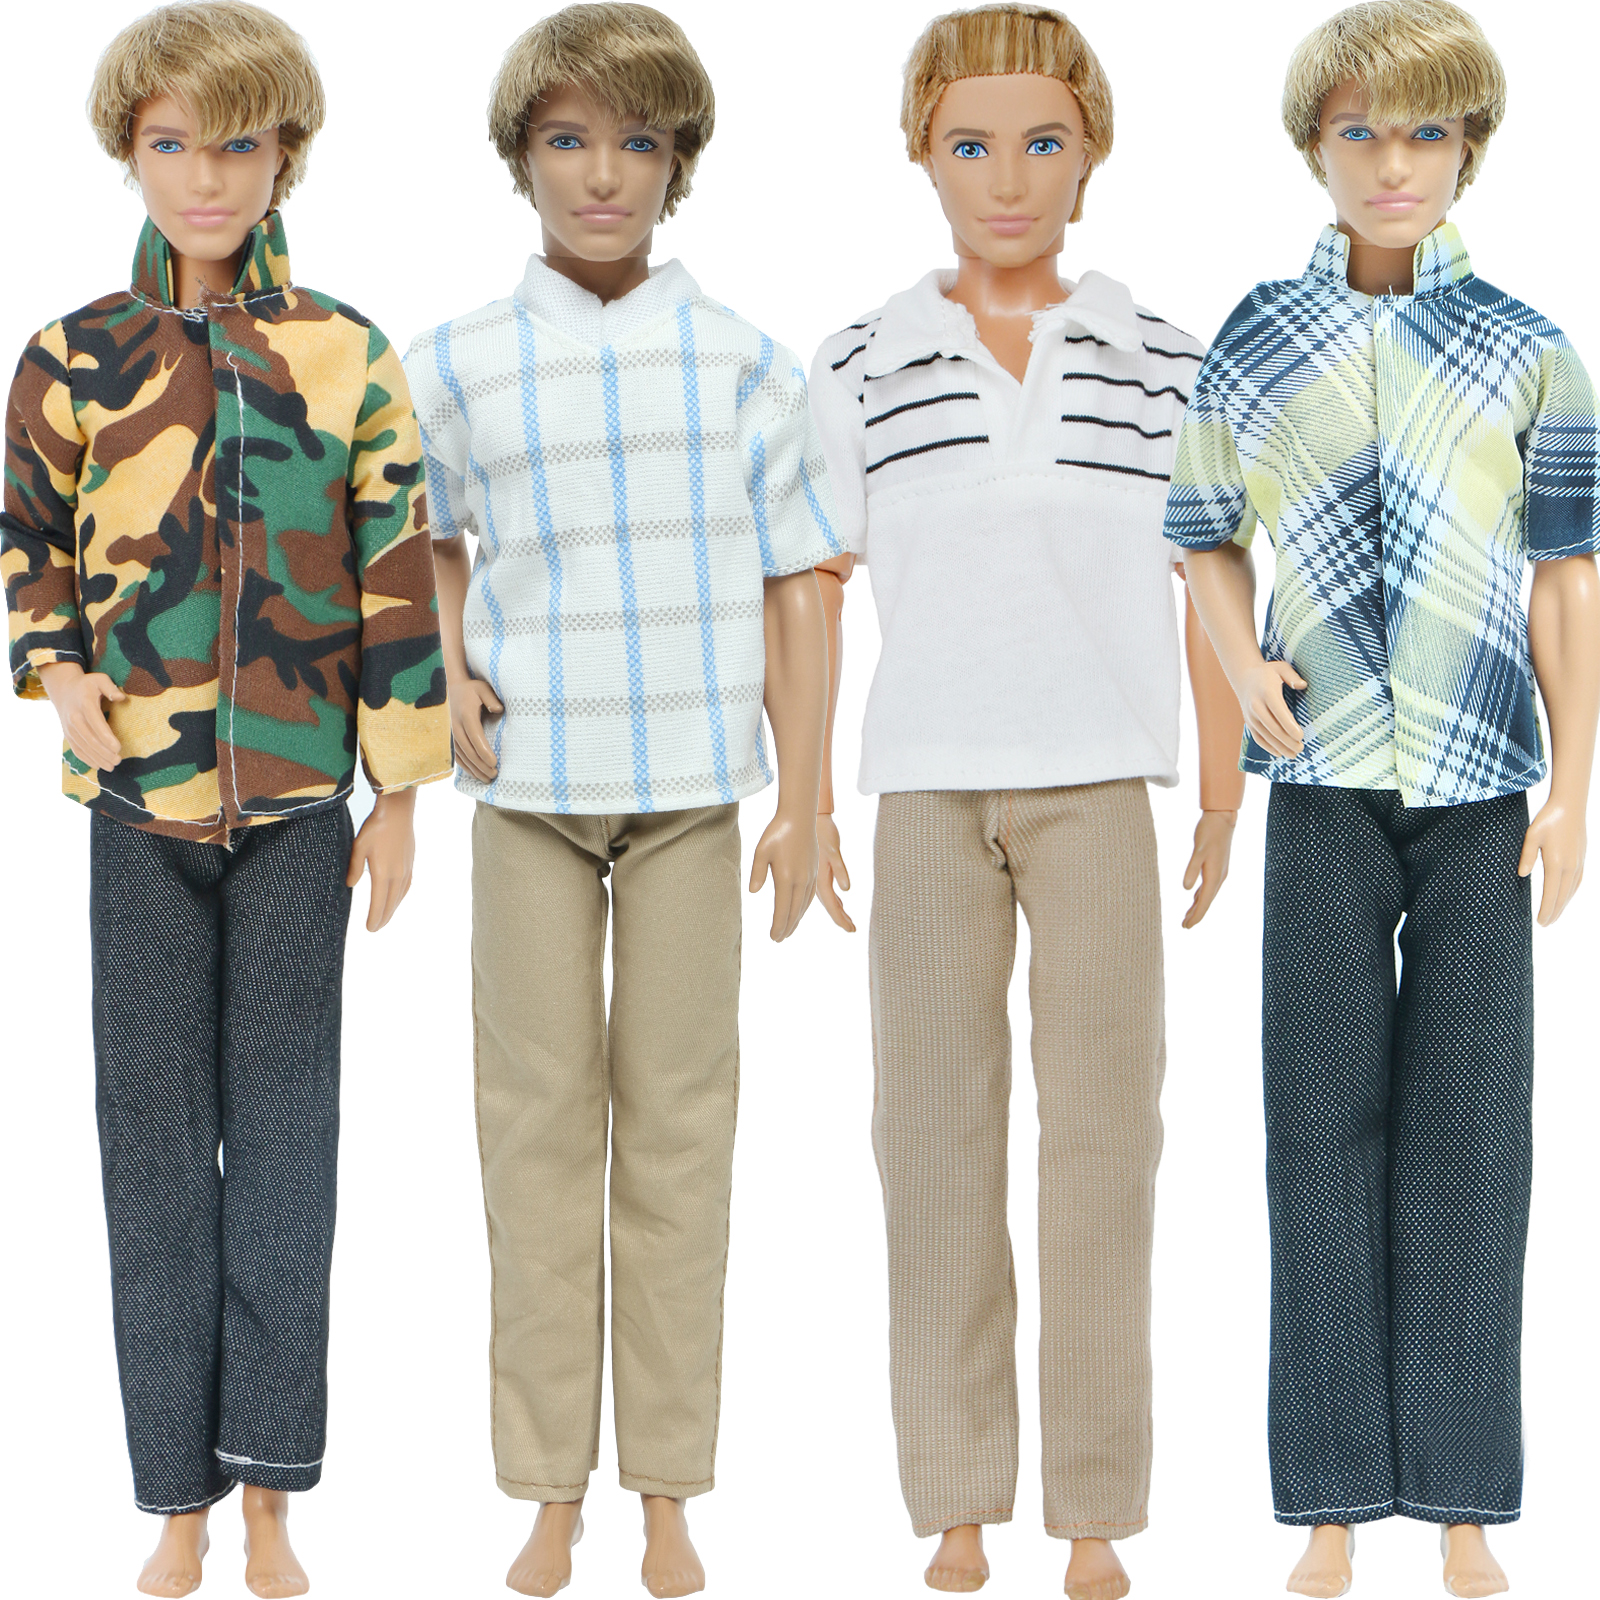 Lot 3 Sets Outfits Clothes Suits Summer Casual Wear for Boy Friend 12 inch Doll